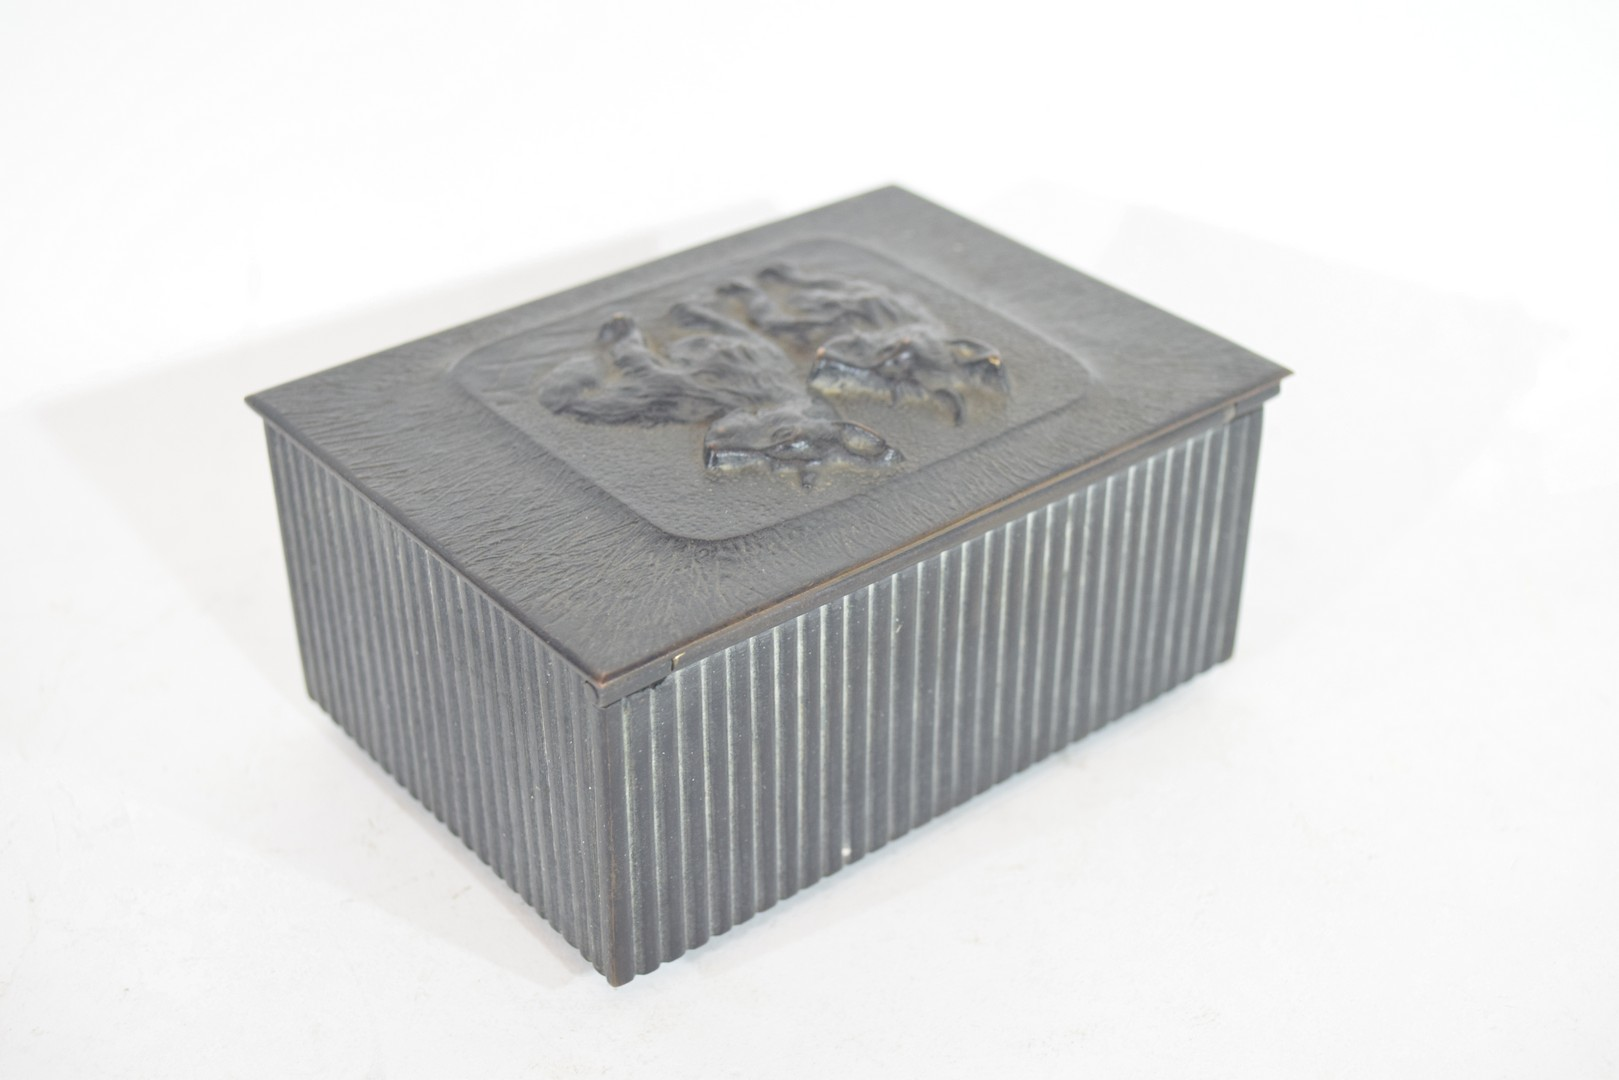 Box, the top modelled with two Corgi style dogs - Image 3 of 6